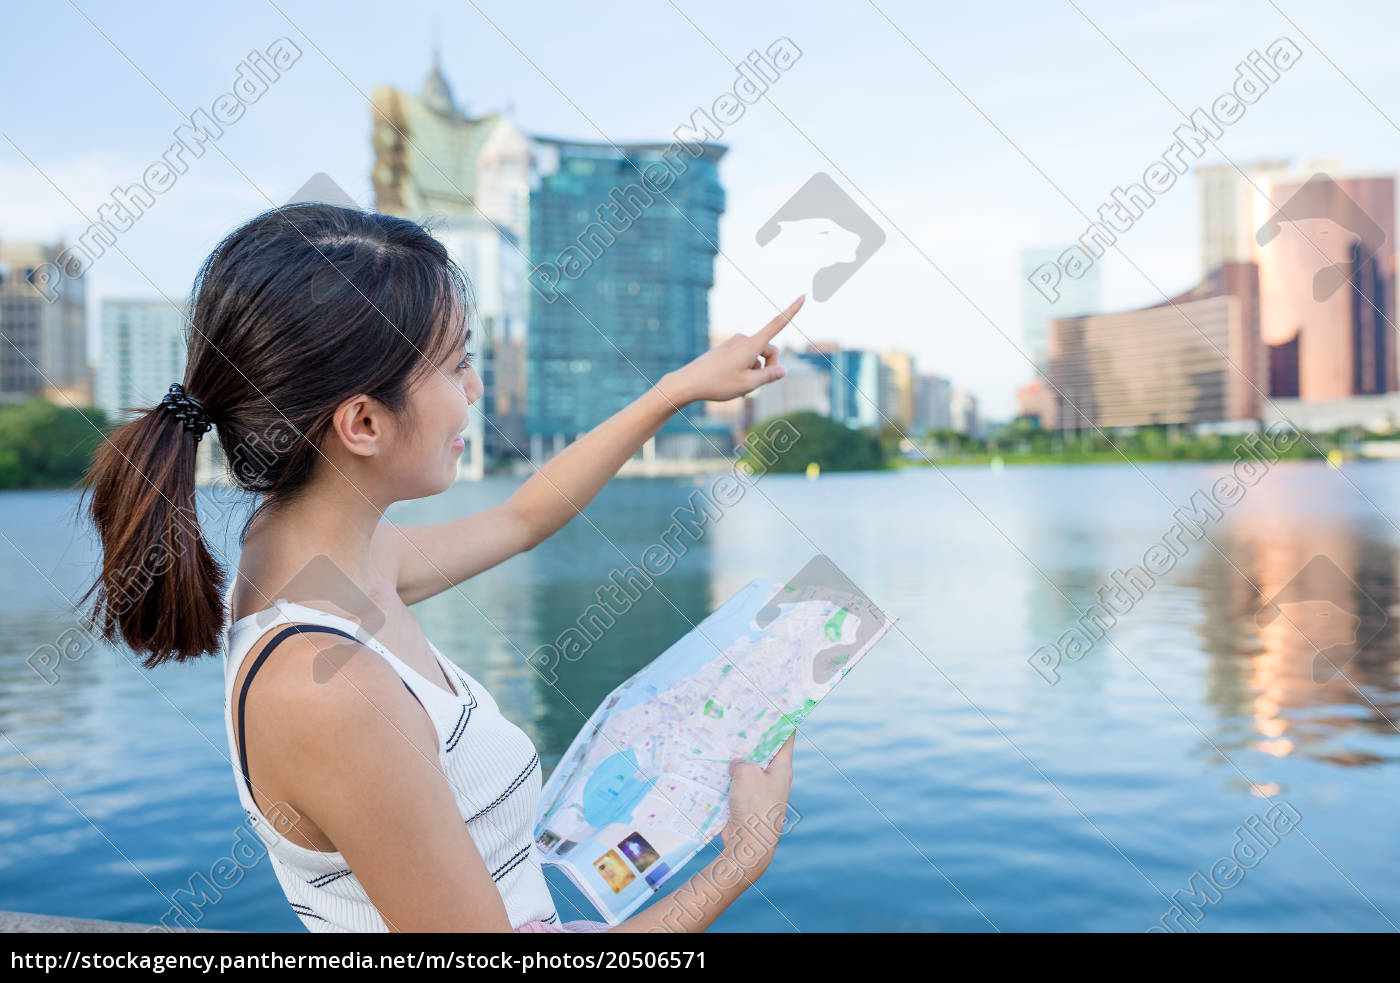 woman, use, of, city, map, in - 20506571